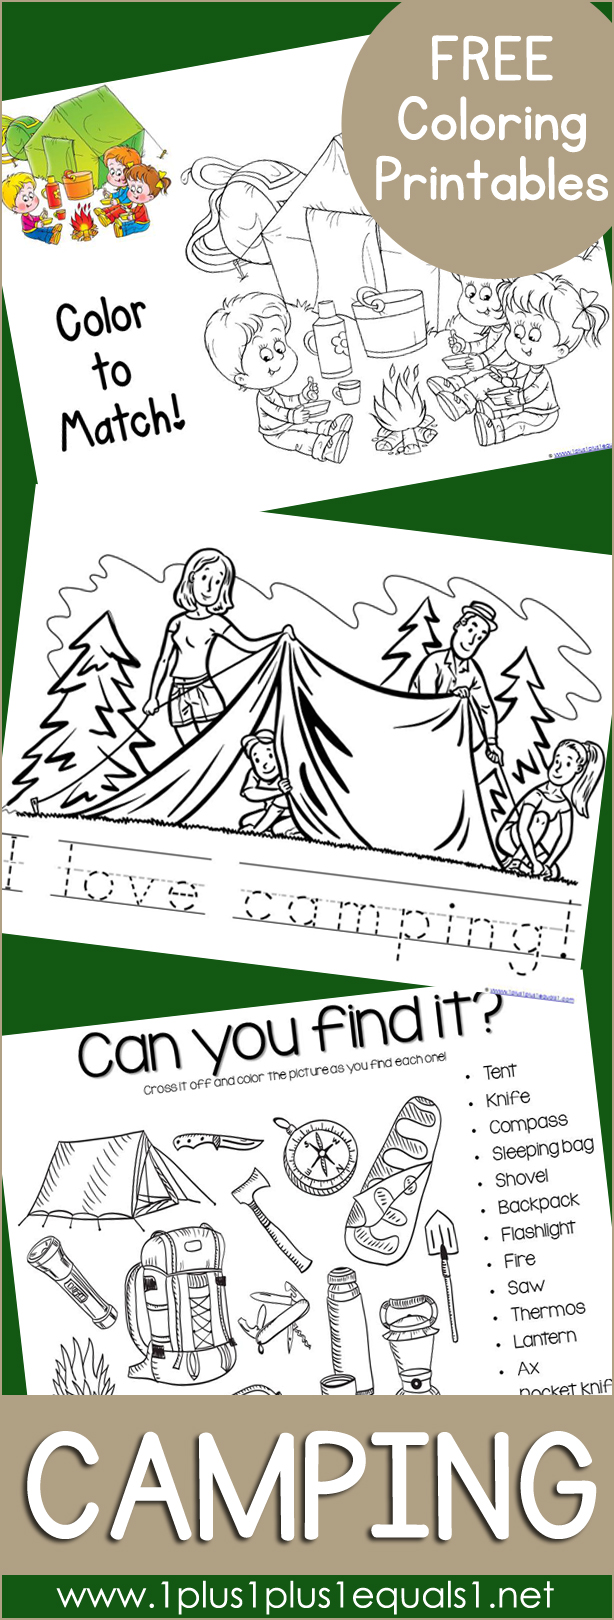 camping coloring printables - Color Printables